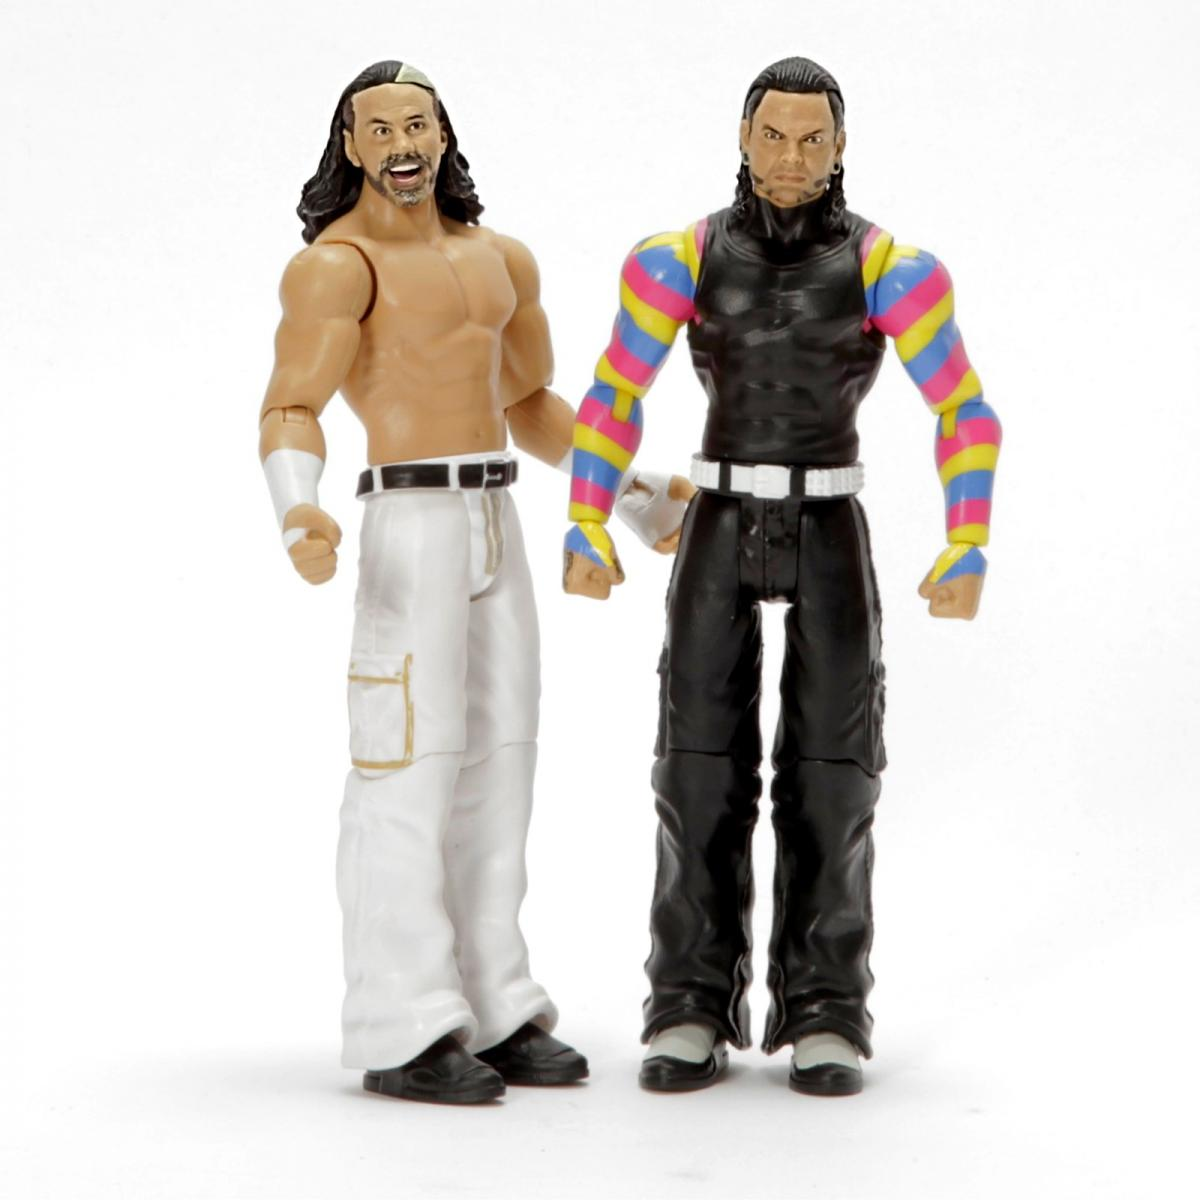 gbn59-battle-packs-series-59-matt-hardy-jeff-hardy-103c41aec418f8bc05422f3c11215021